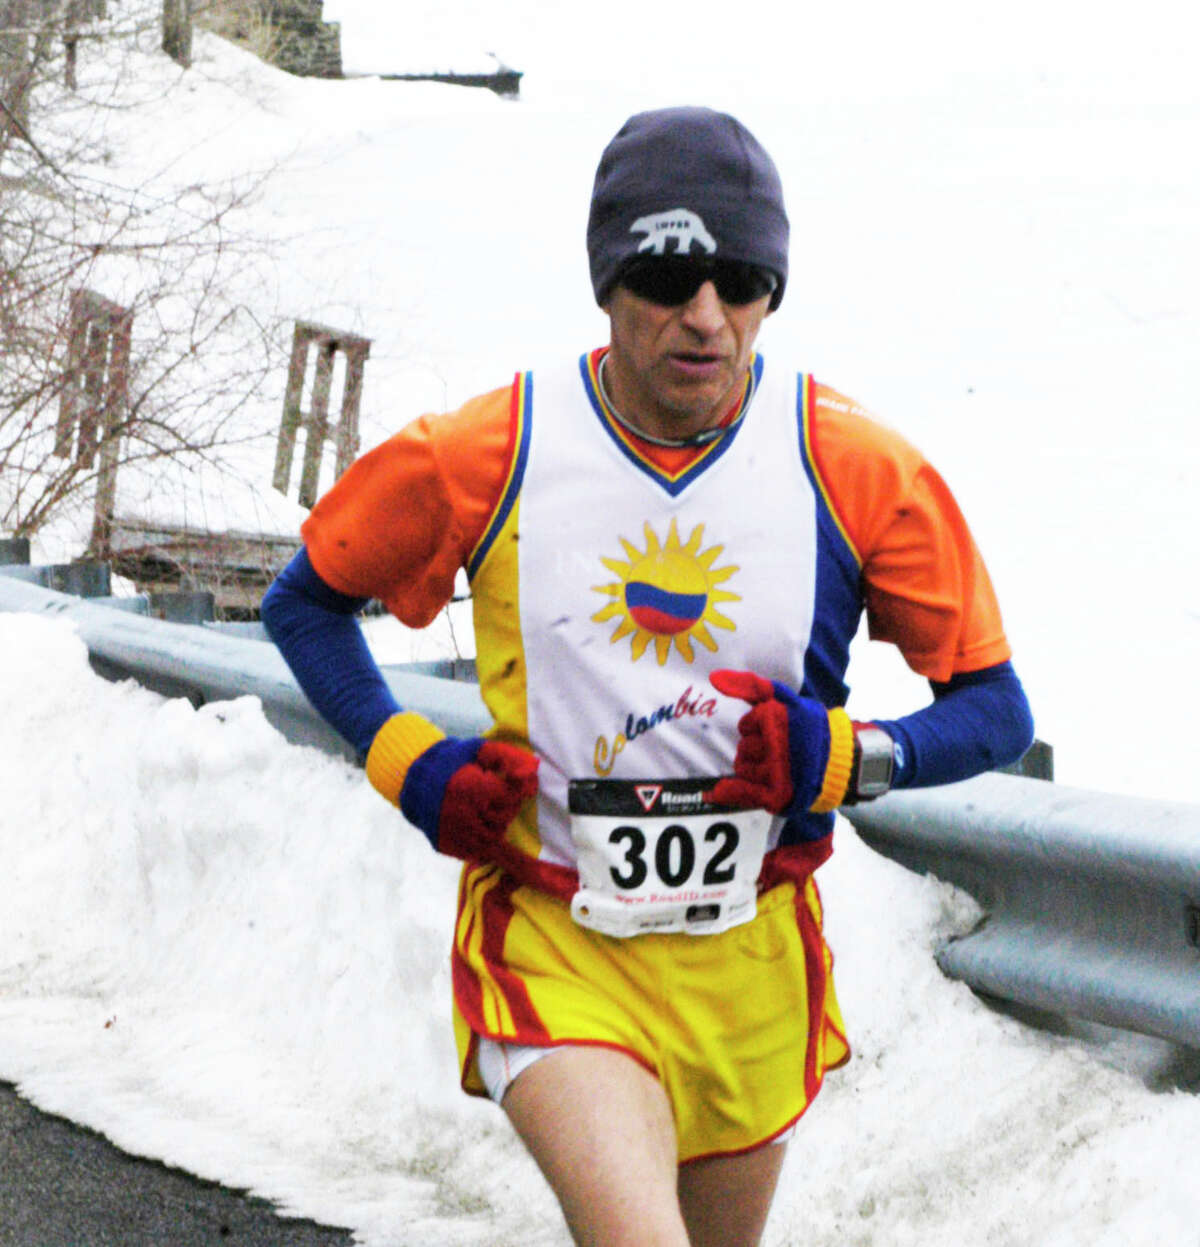 Seemingly ageless at 60, Pedro Cobos of New Milford maintains a steady stride as he nears the three-mile mark of the 30th edition of the Polar Bear Run around Lake Waramaug, Feb. 23, 2014.